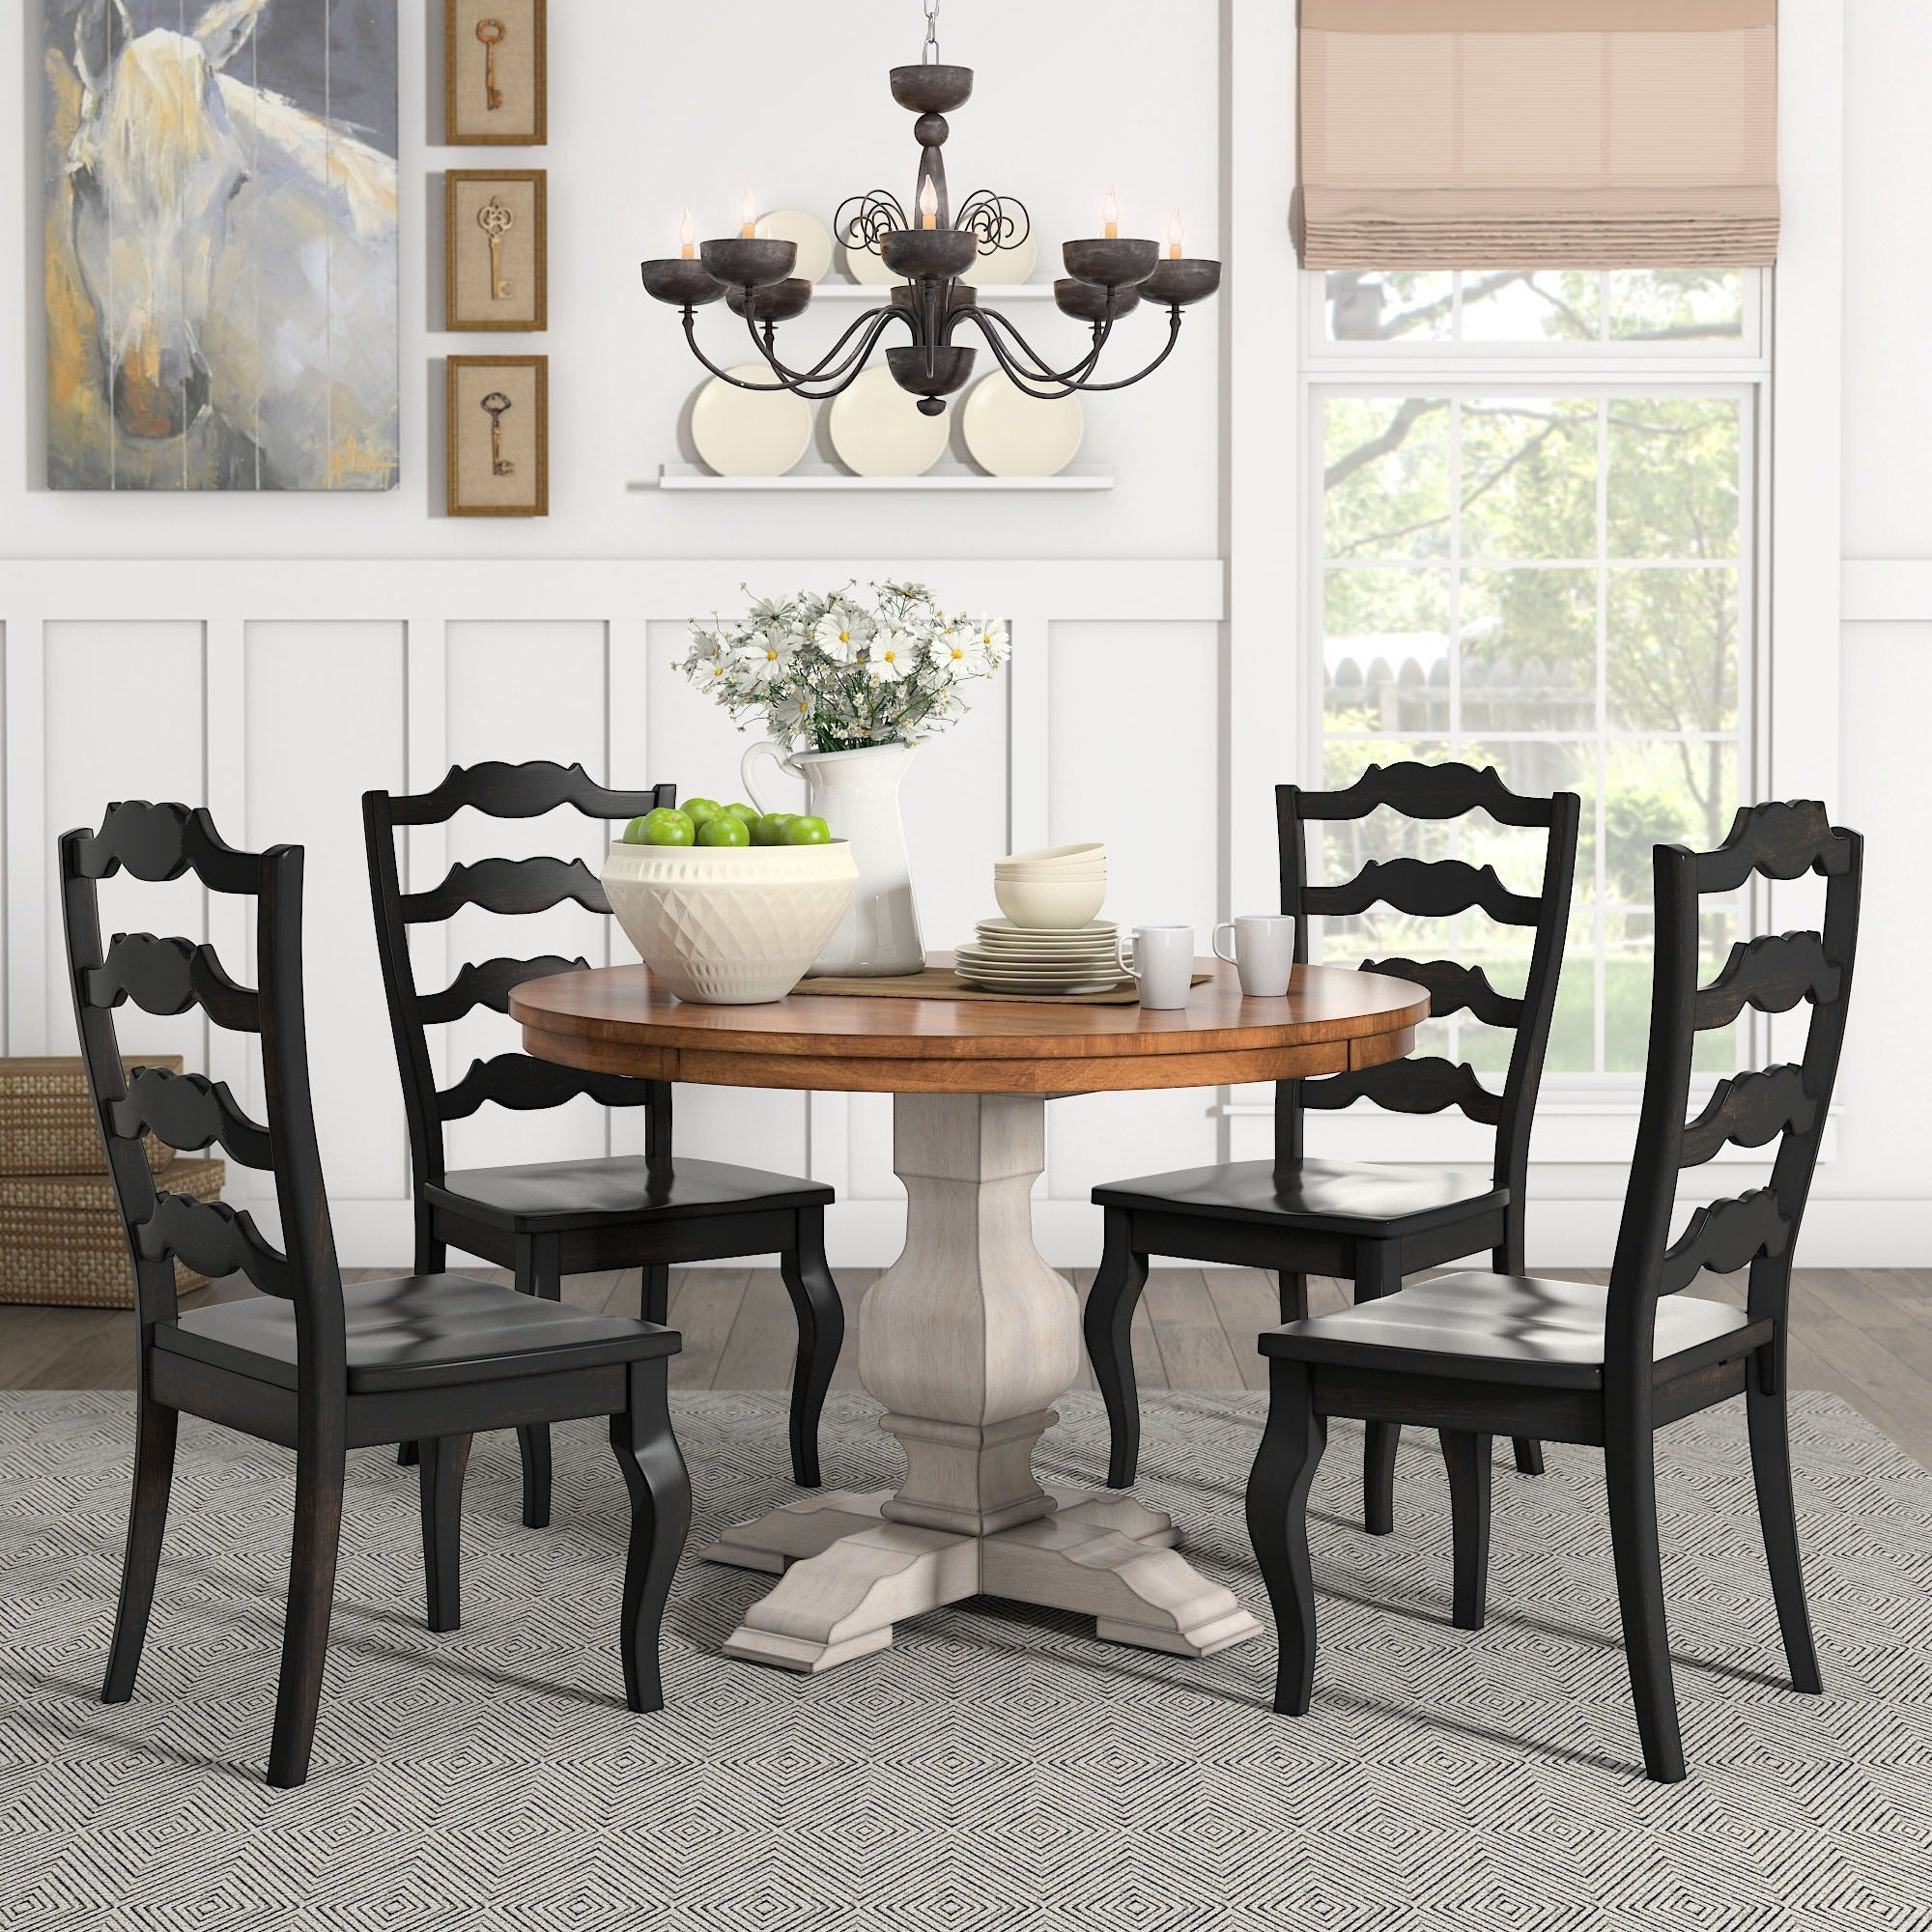 eleanor antique white round solid wood top 5 piece dining set french ladder by ebay. Black Bedroom Furniture Sets. Home Design Ideas